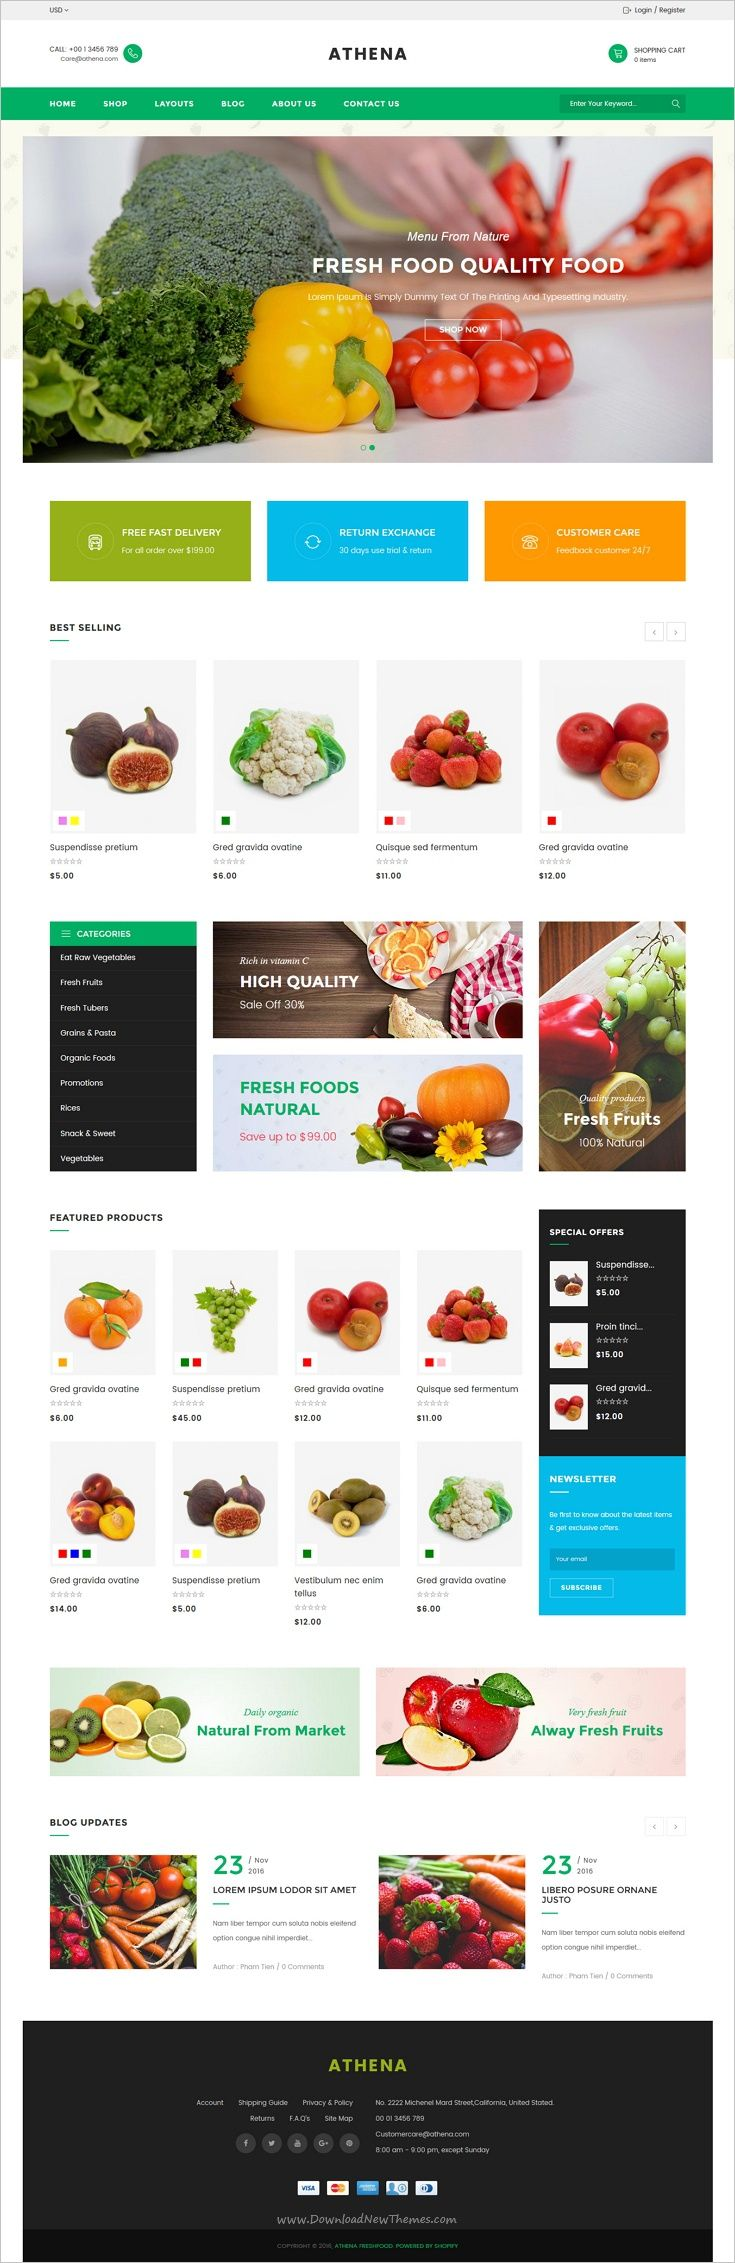 JMS Athena is a multipurpose responsive #Shopify theme for online #organic #freshfood eCommerce website with 16 unique homepage layouts download now➩  https://themeforest.net/item/jms-athena-ultimate-multipurpose-responsive-shopify-theme/19163078?ref=Datasata